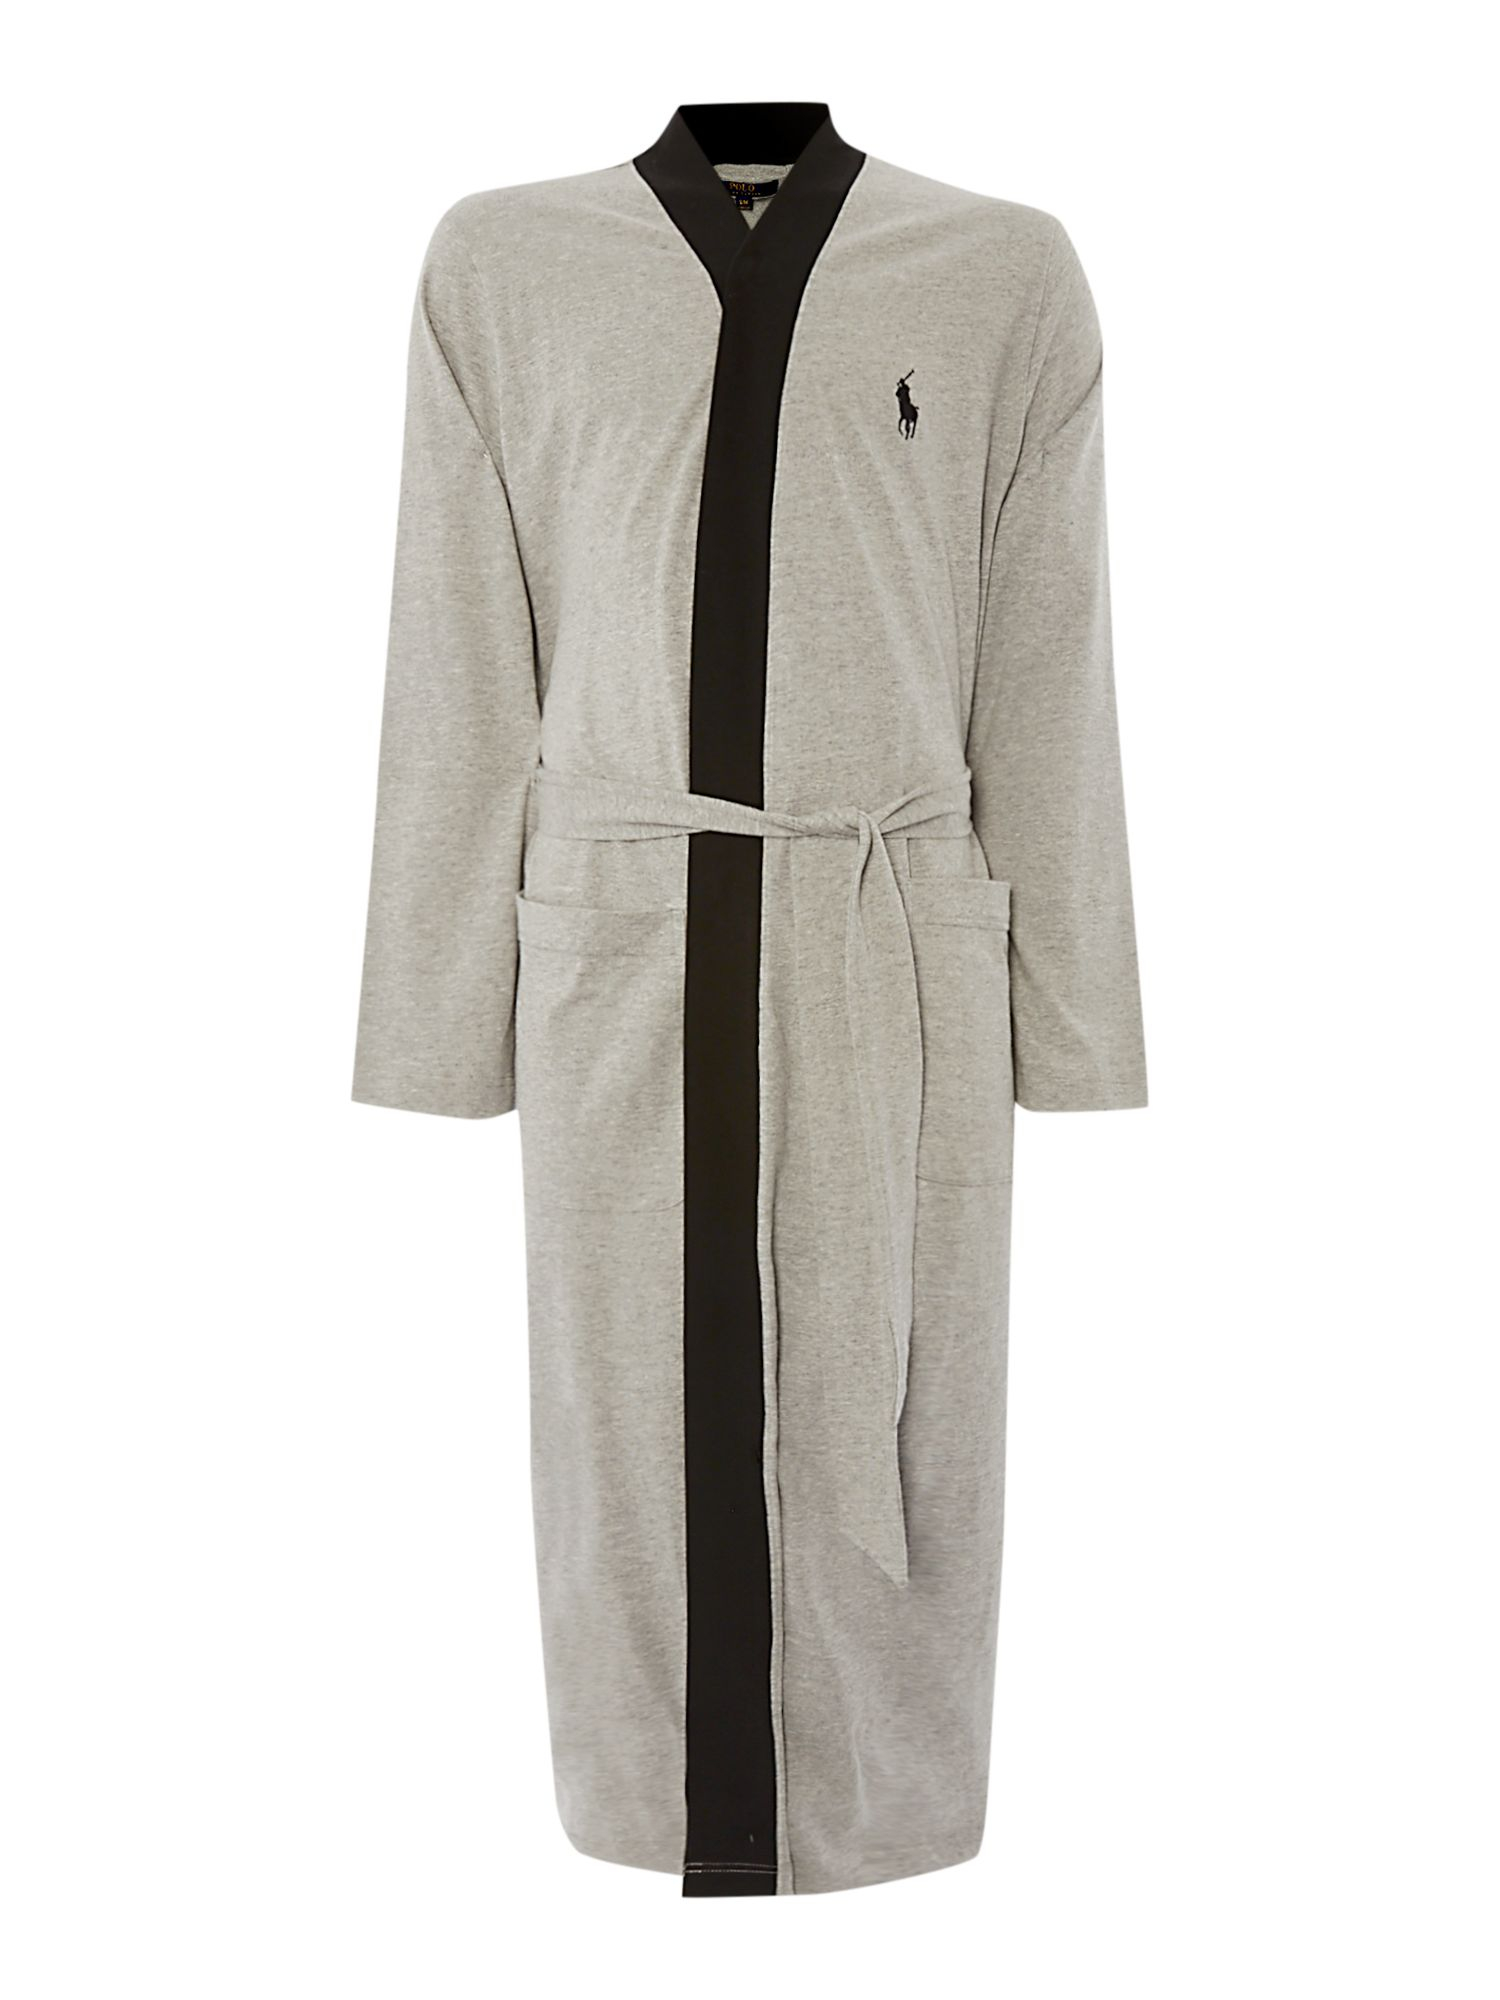 polo ralph lauren gray kimono robe for men lyst. Black Bedroom Furniture Sets. Home Design Ideas